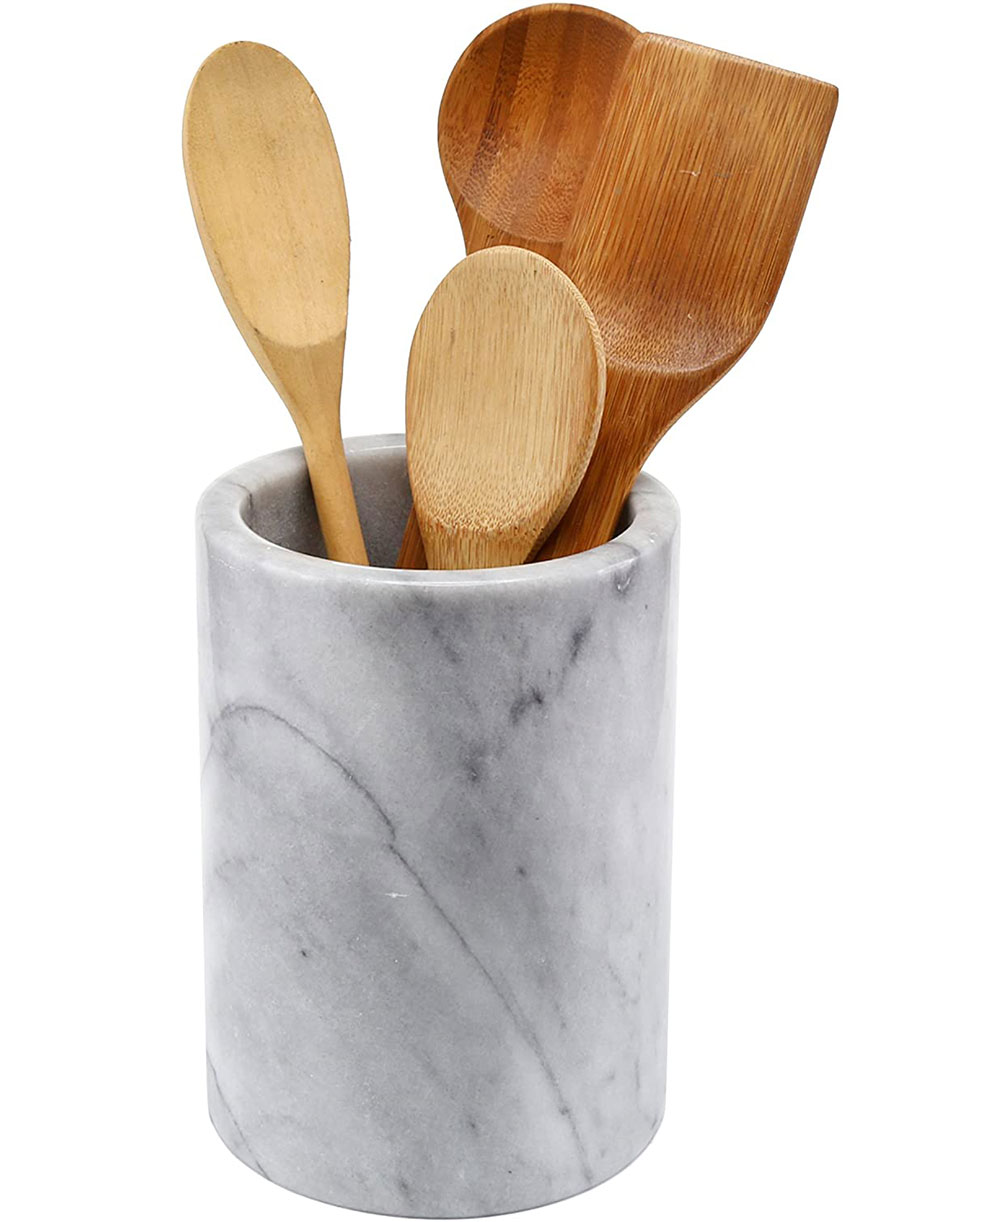 Marble Kitchen Utensil Holder What is the best kitchen utensil holder out there?